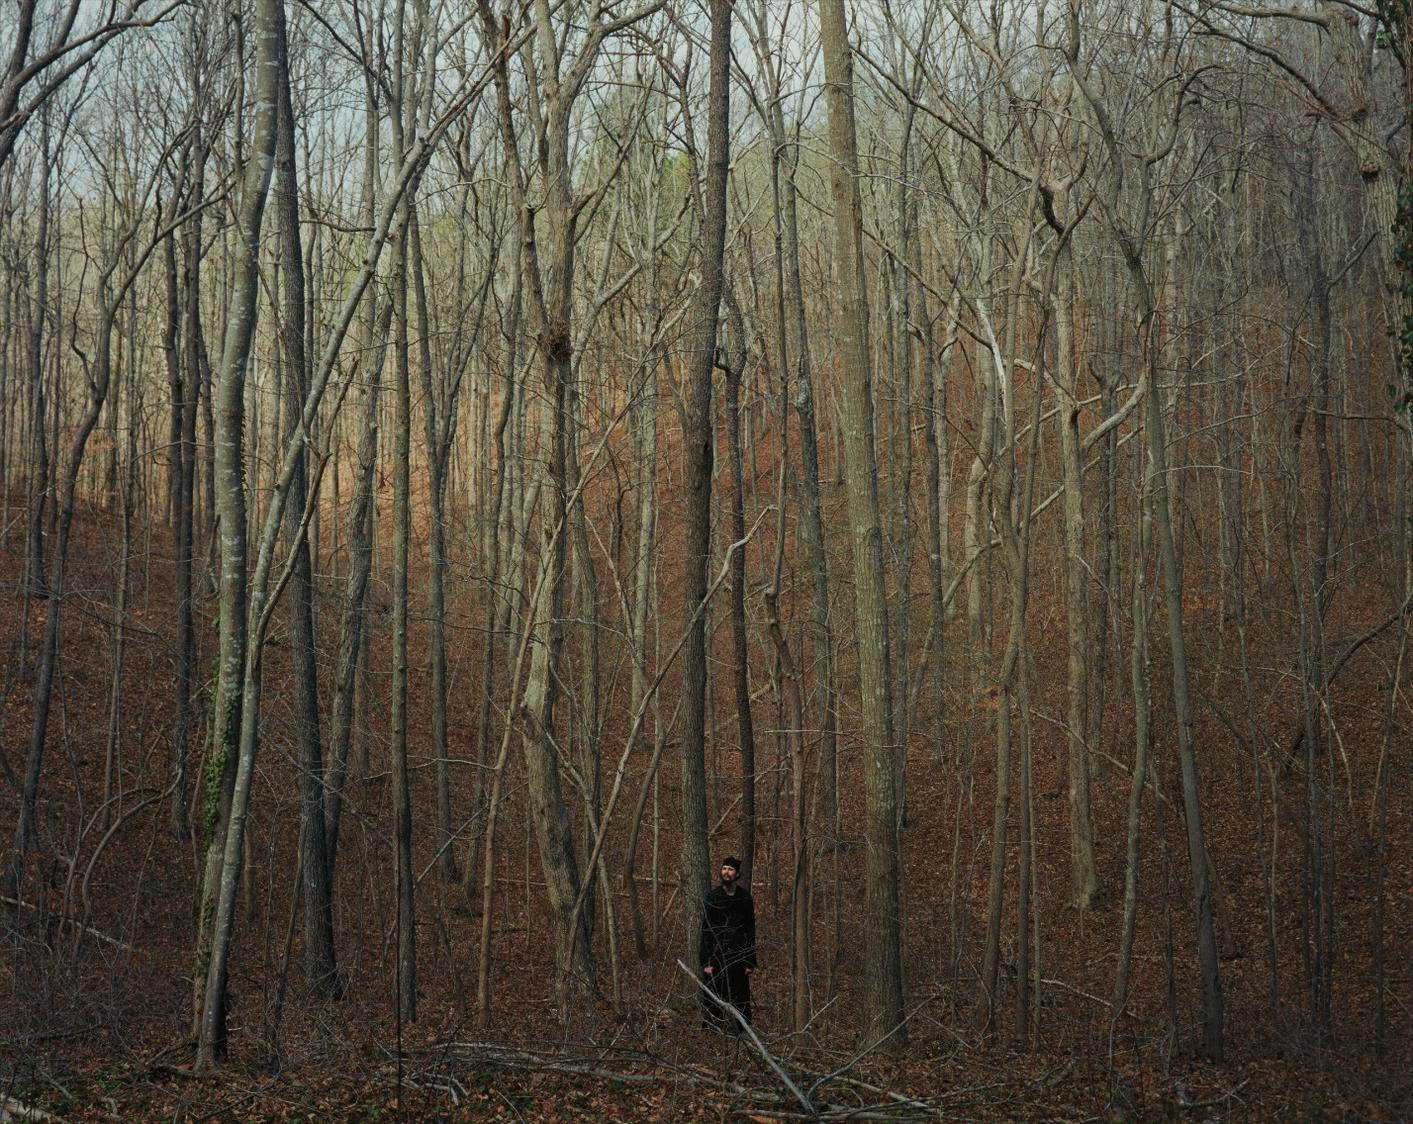 Alec Soth-2006_03Zl0016 (Monk In Woods)-2006